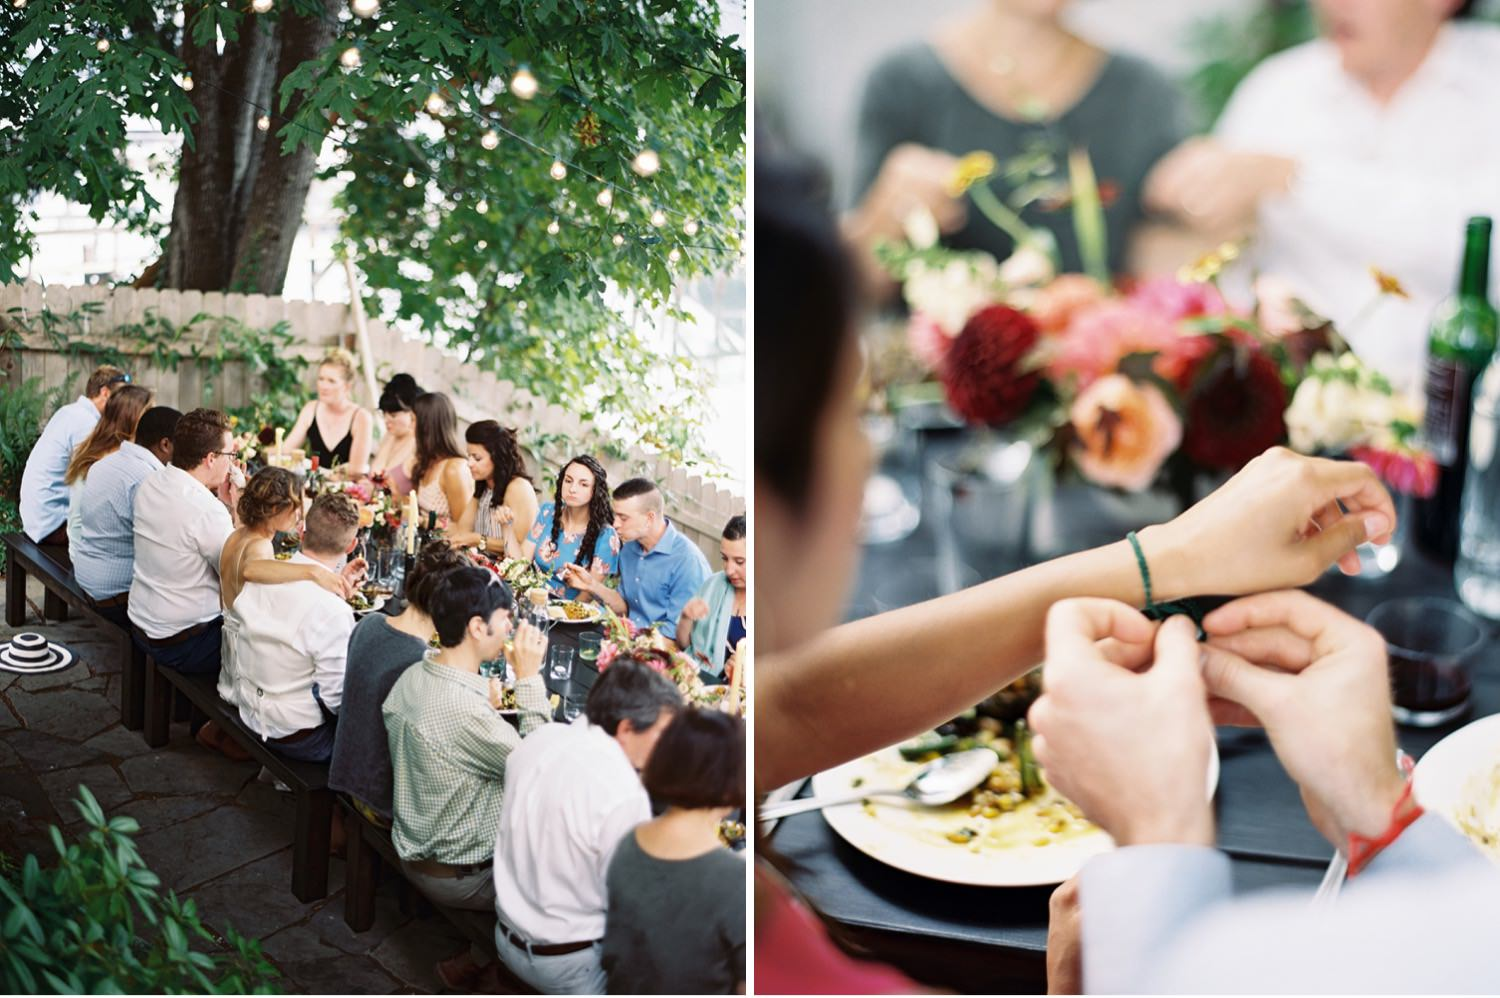 Farm to table dinner at an intimate backyard wedding